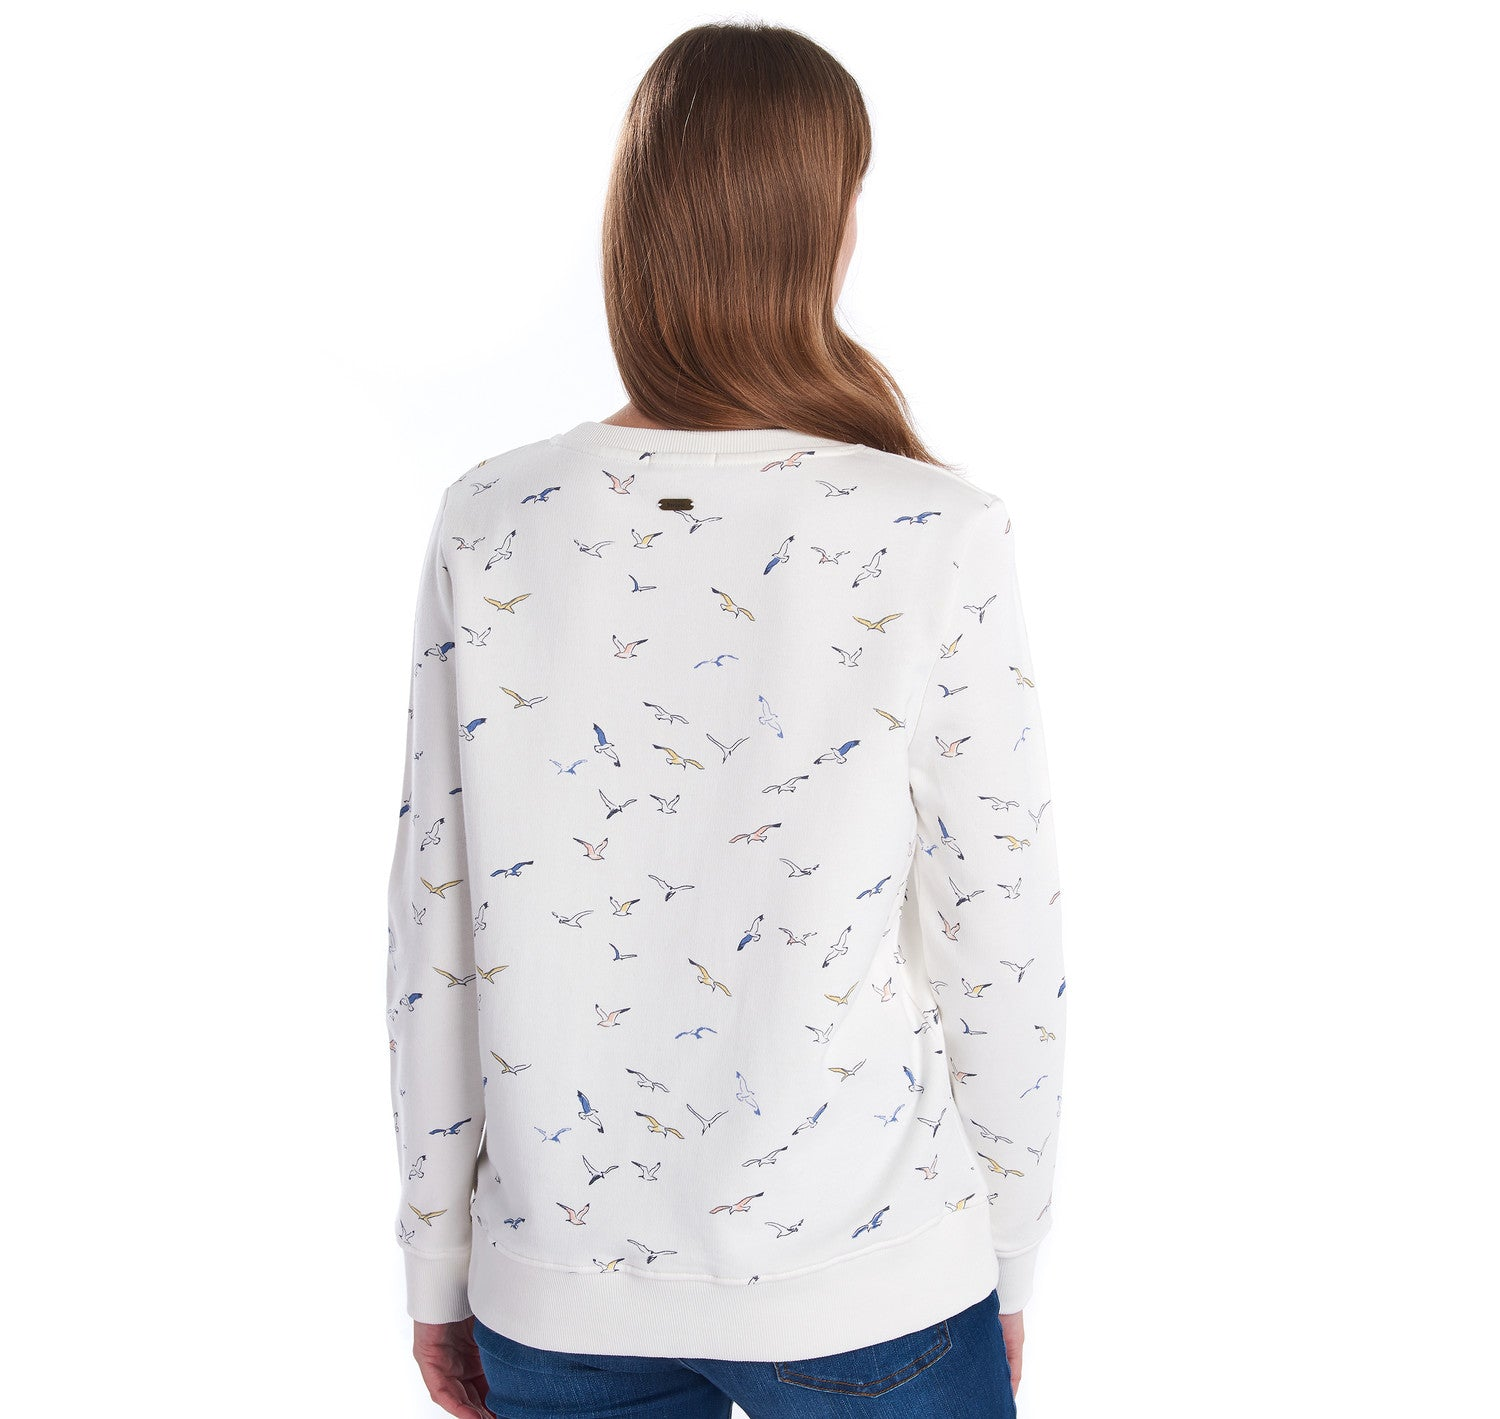 Barbour Amber Sweatshirt for Ladies in Cloud White